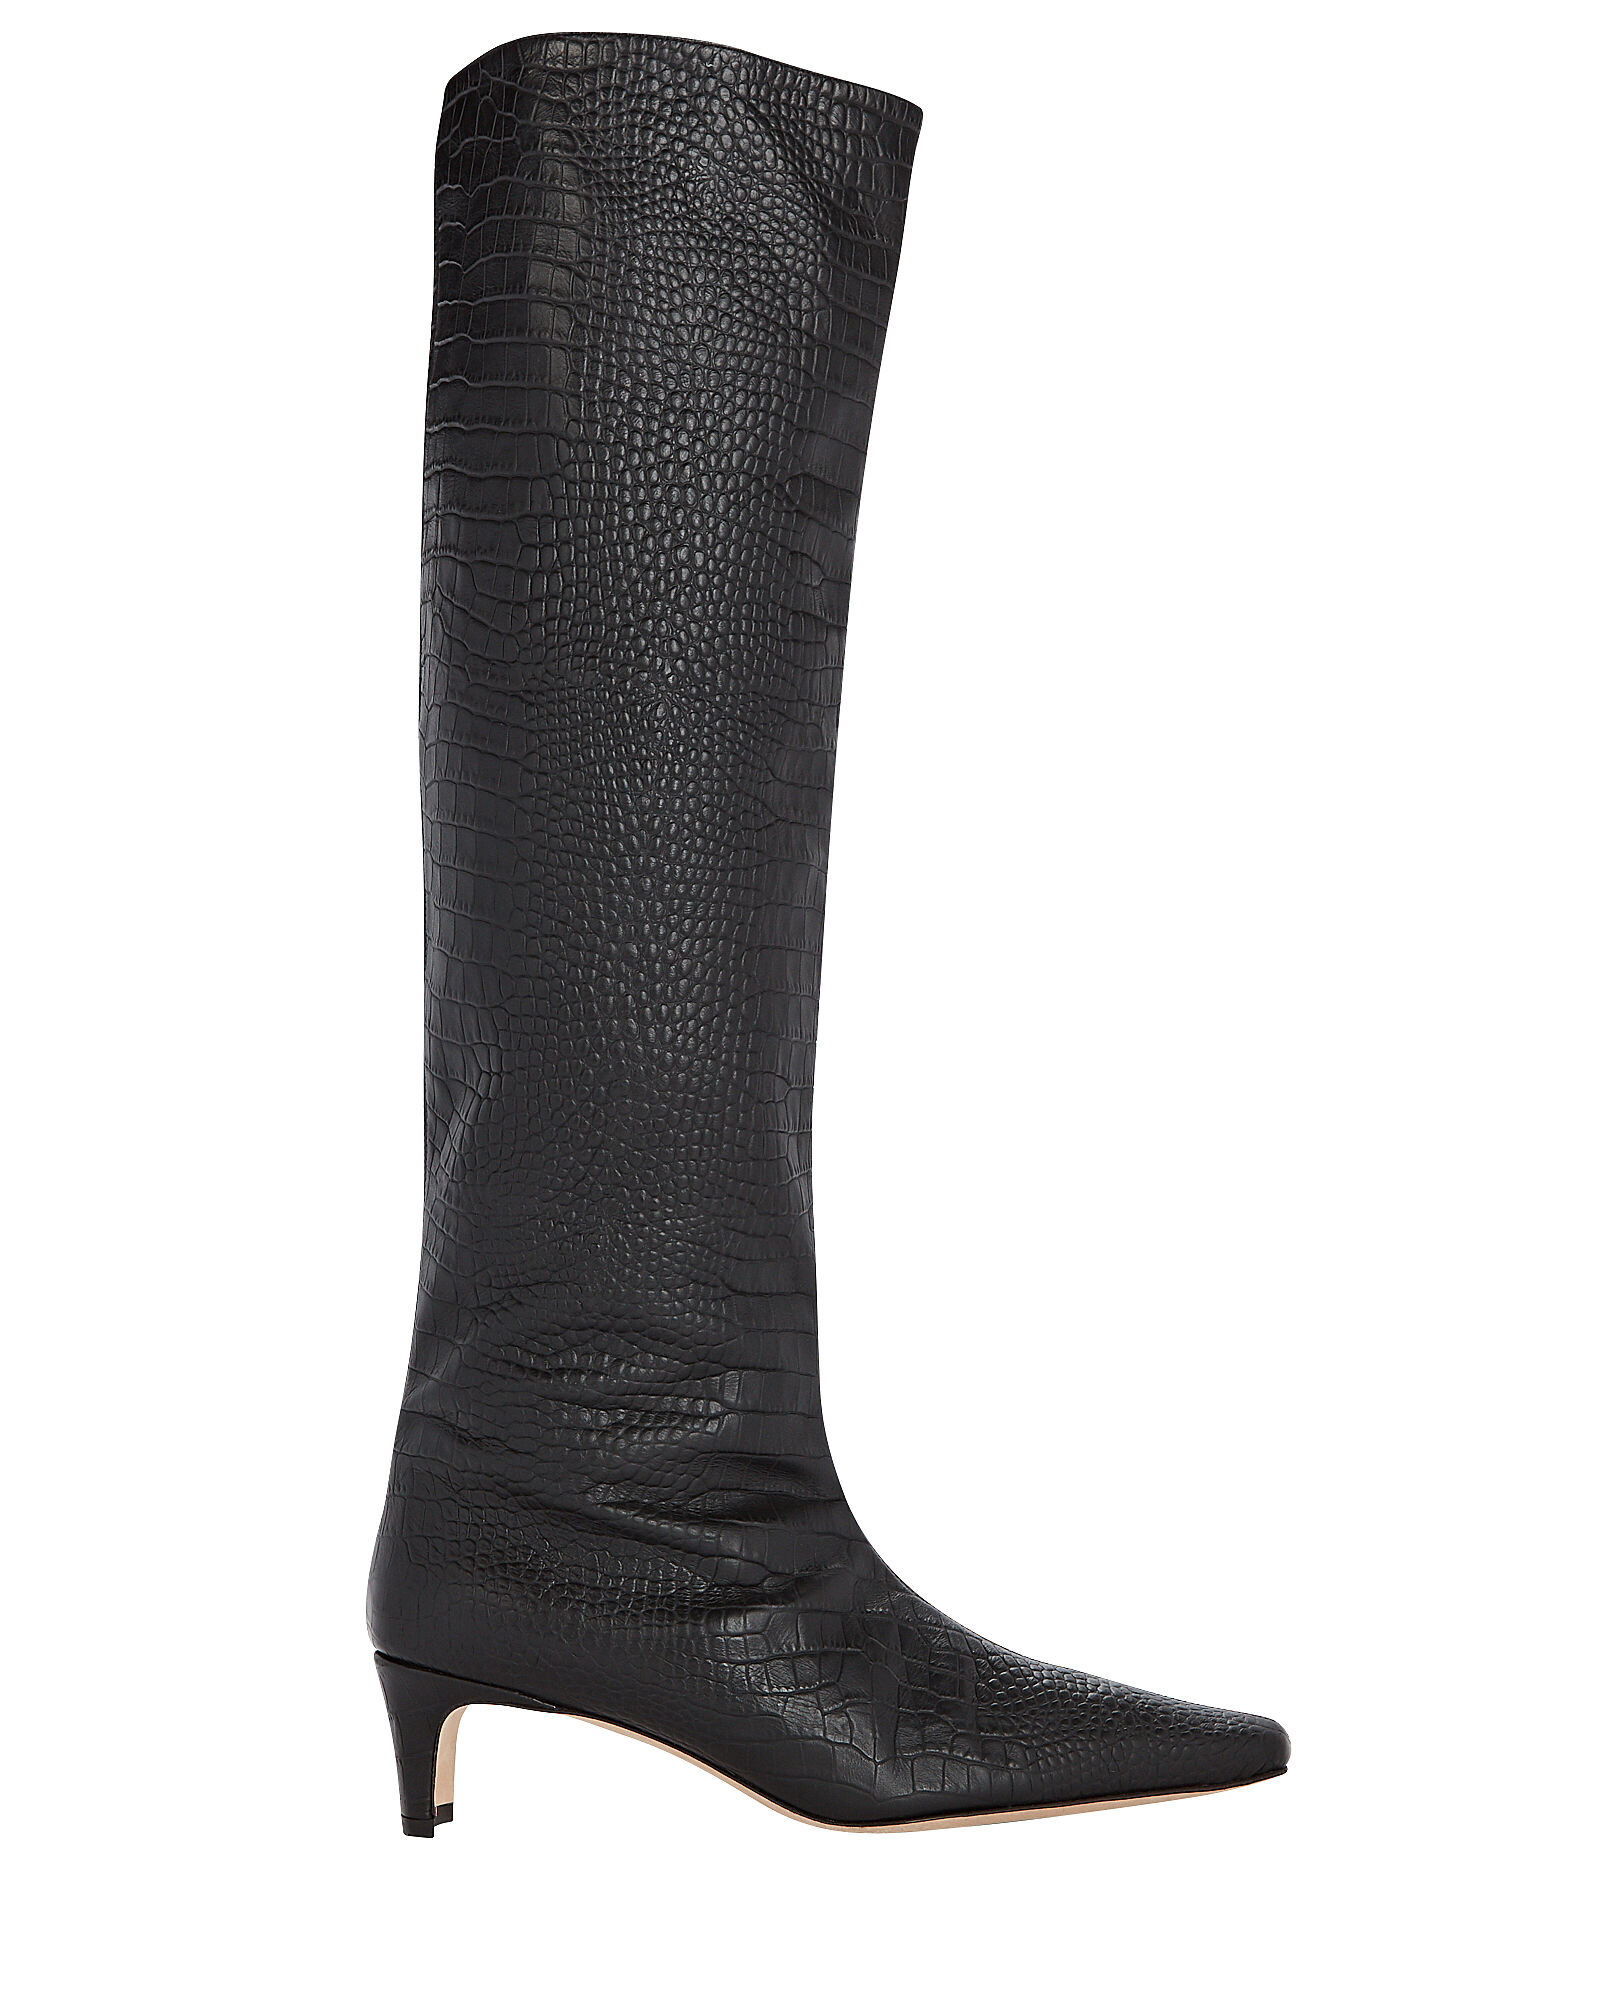 Wally Croc-Embossed Knee-High Boots, BLACK, hi-res